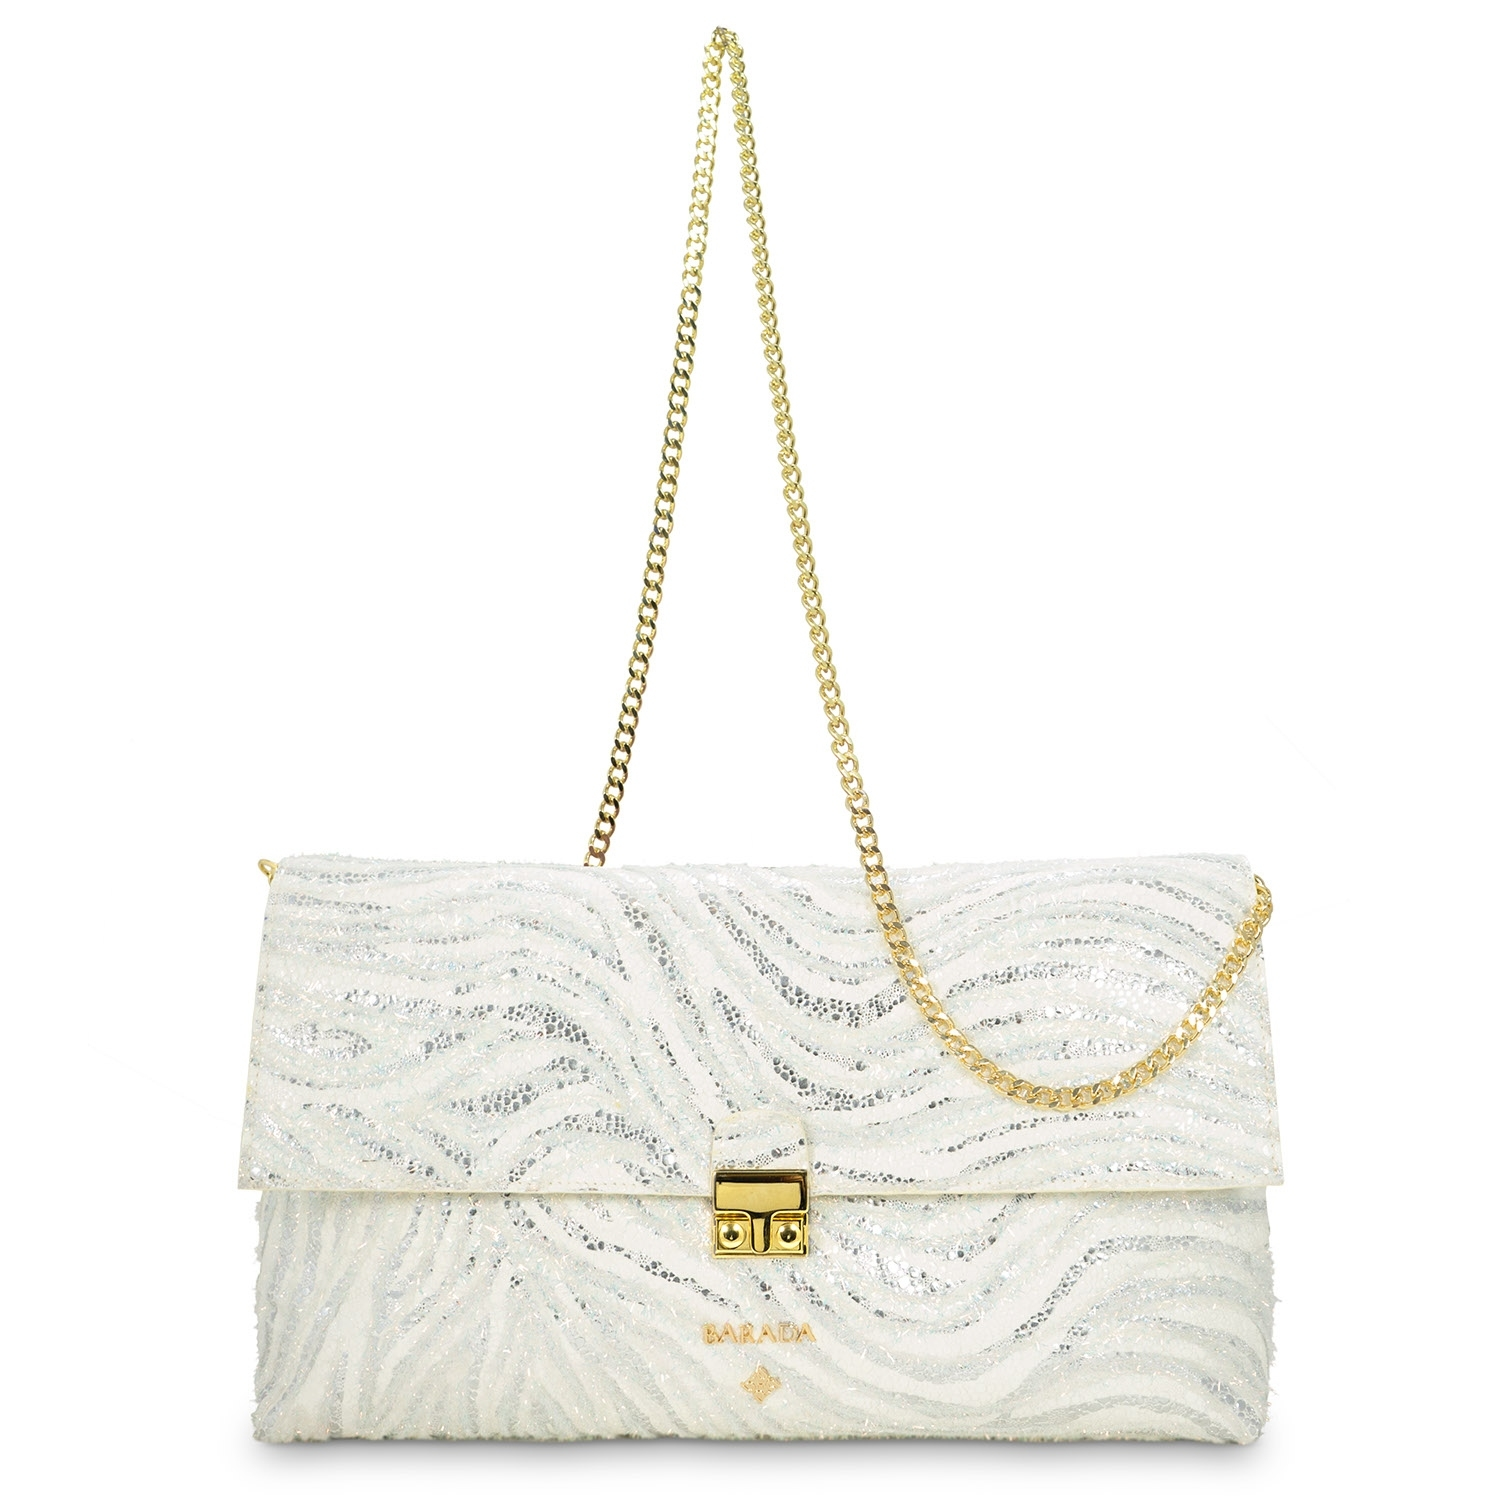 6e02ea53b9fb Clutch Handbag from our Dama Blanca collection in Lamb Skin and White color.  Loading zoom